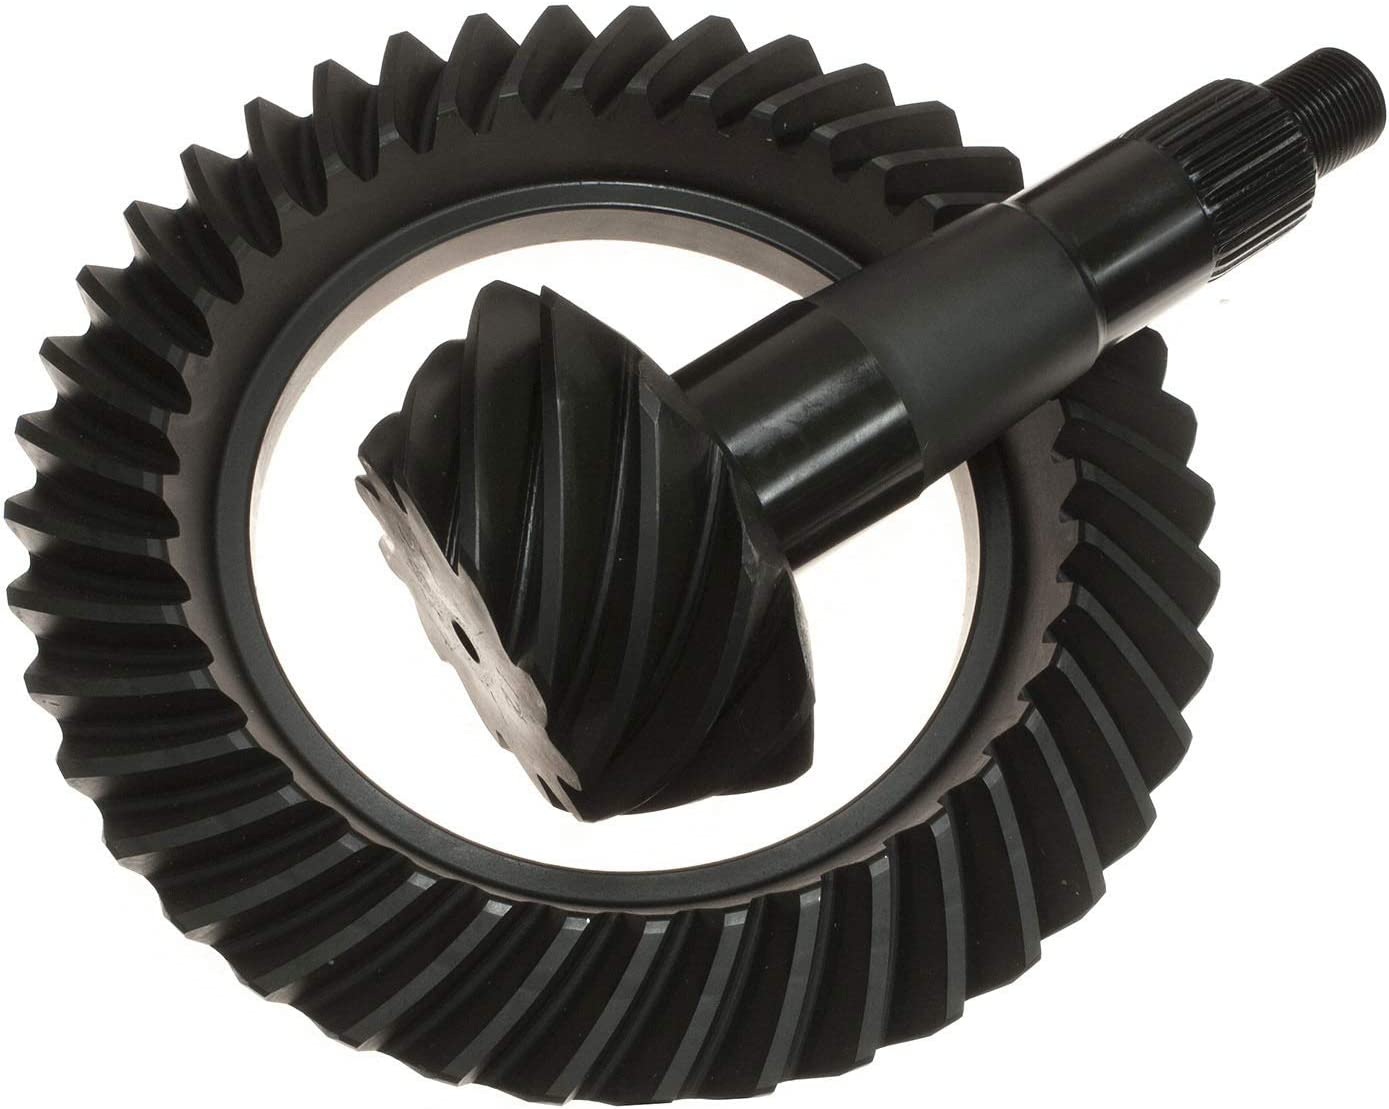 Selling Richmond 12BC410T Ring and Set Gear Pinion Price reduction